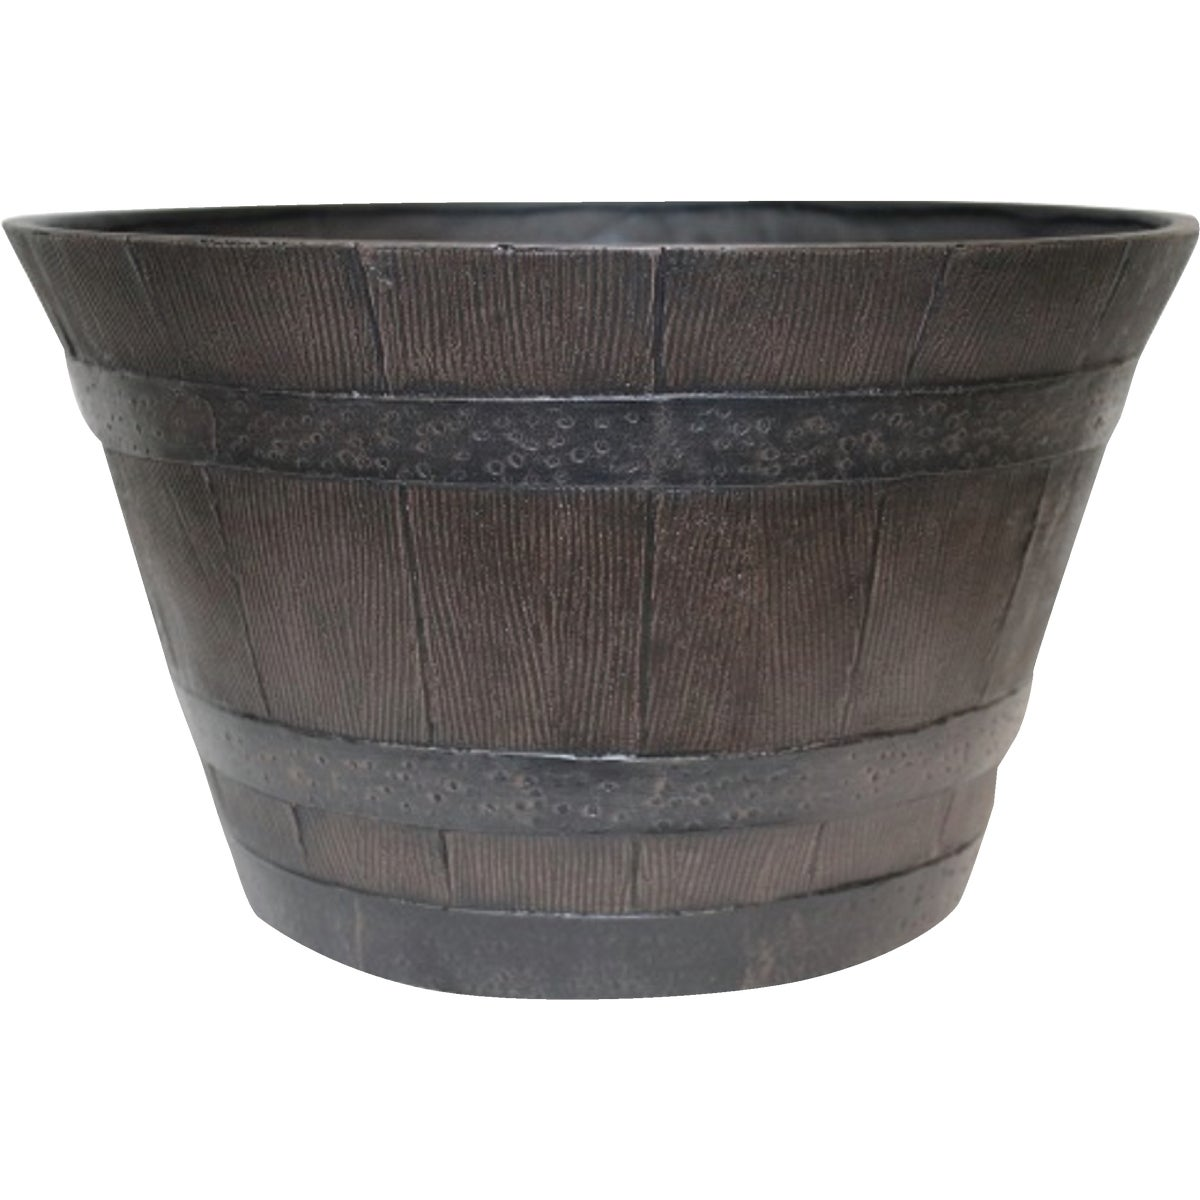 "22"" WINE BARREL PLNTR - HDR-002550 by Southern Patio"